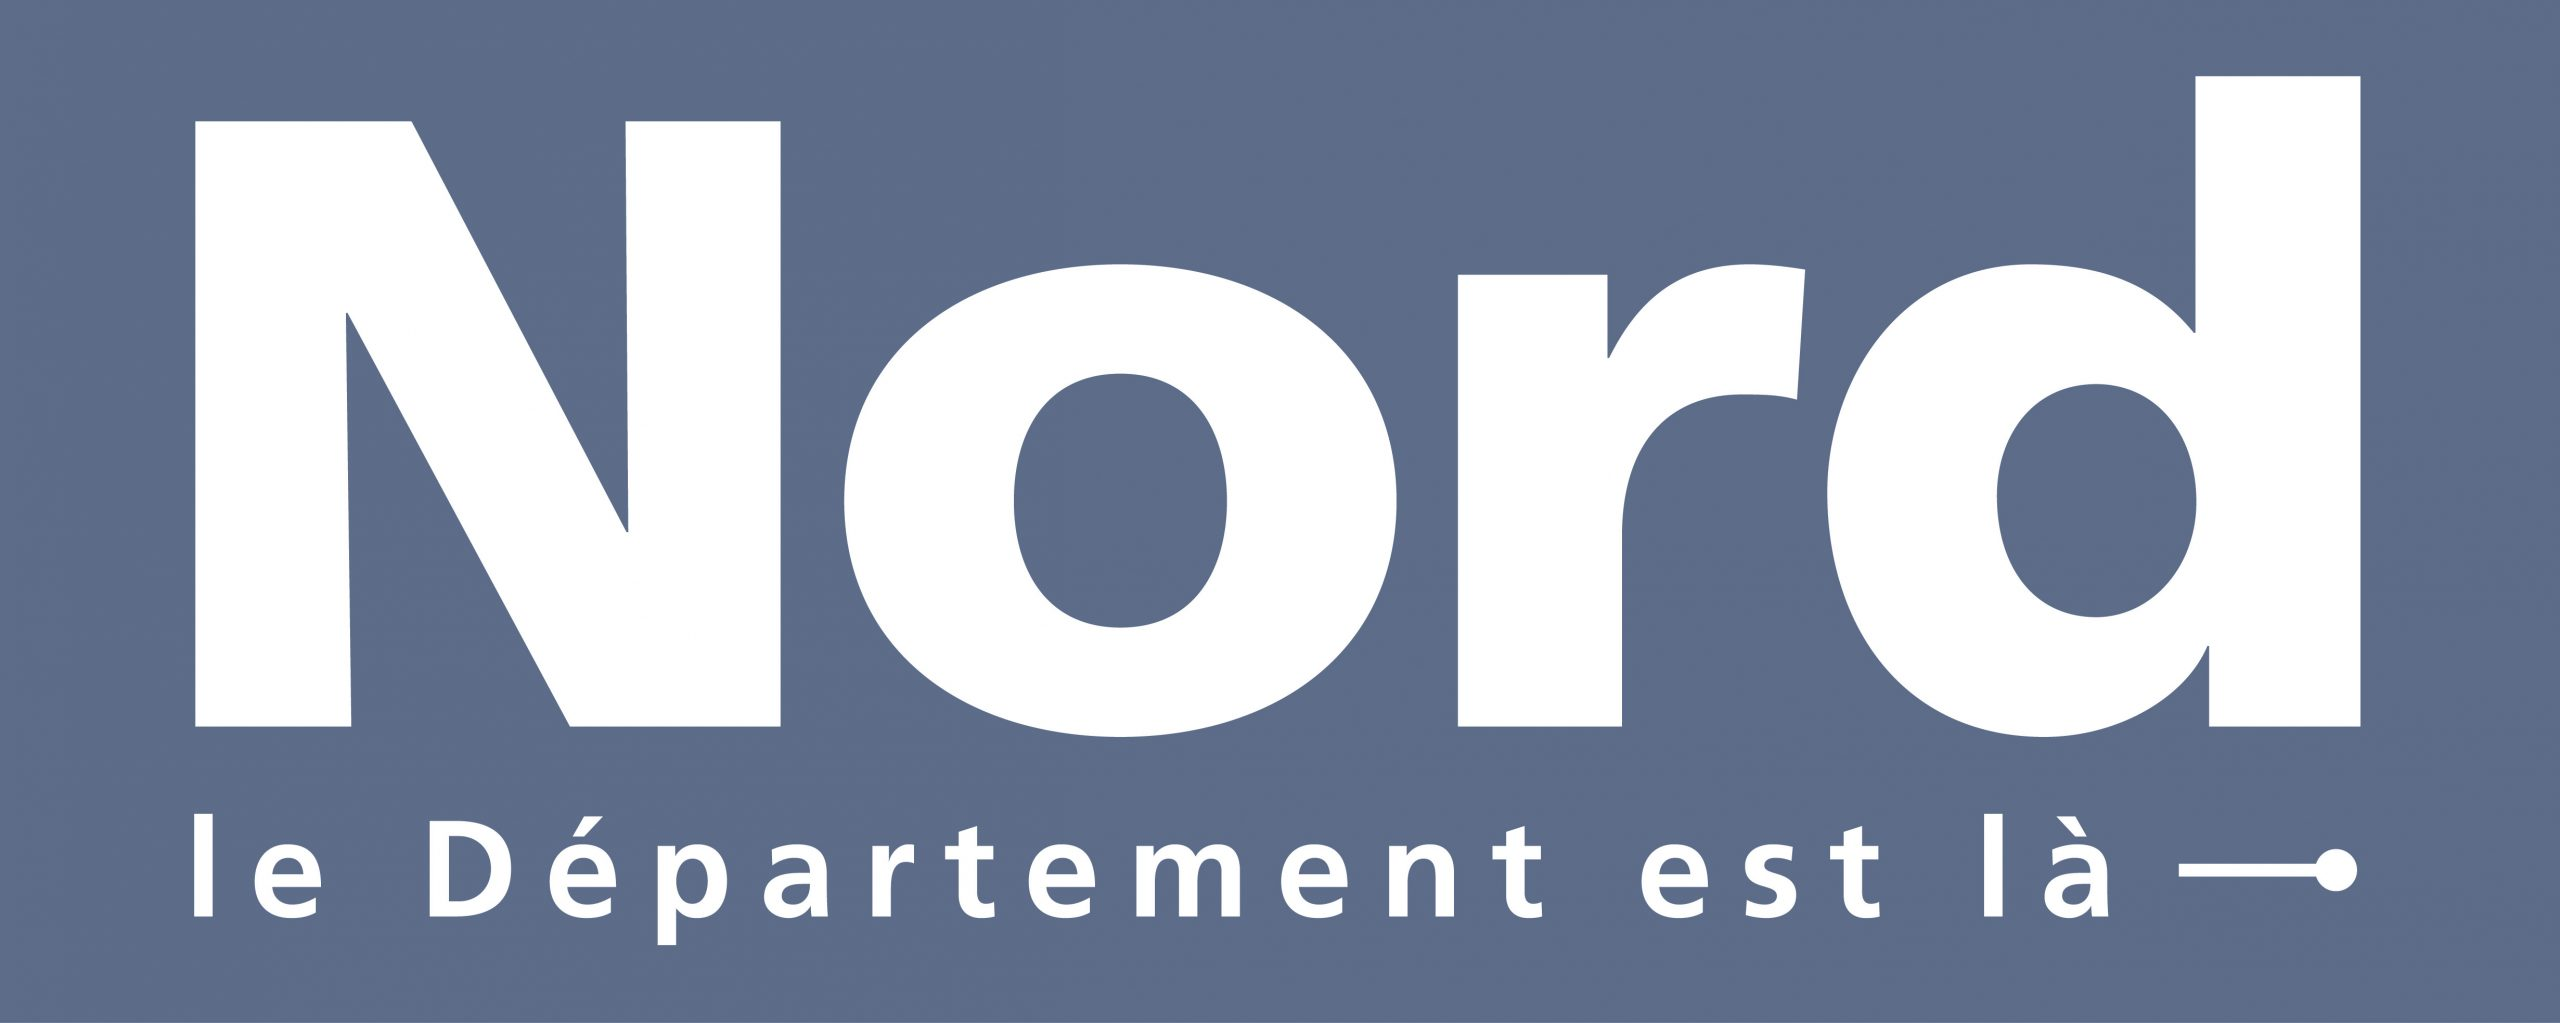 logo_nord-1181x472_px-scaled-1